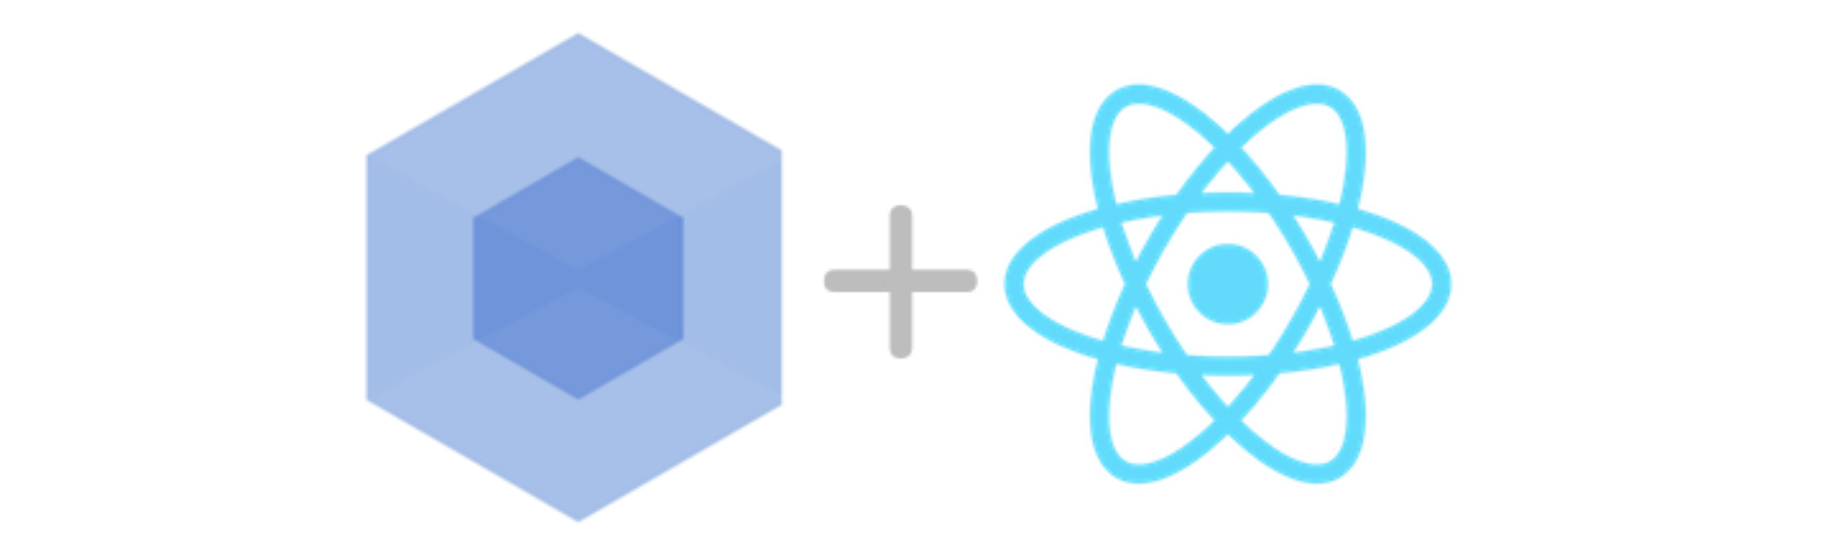 When using react js webpack-dev-server does not bundle